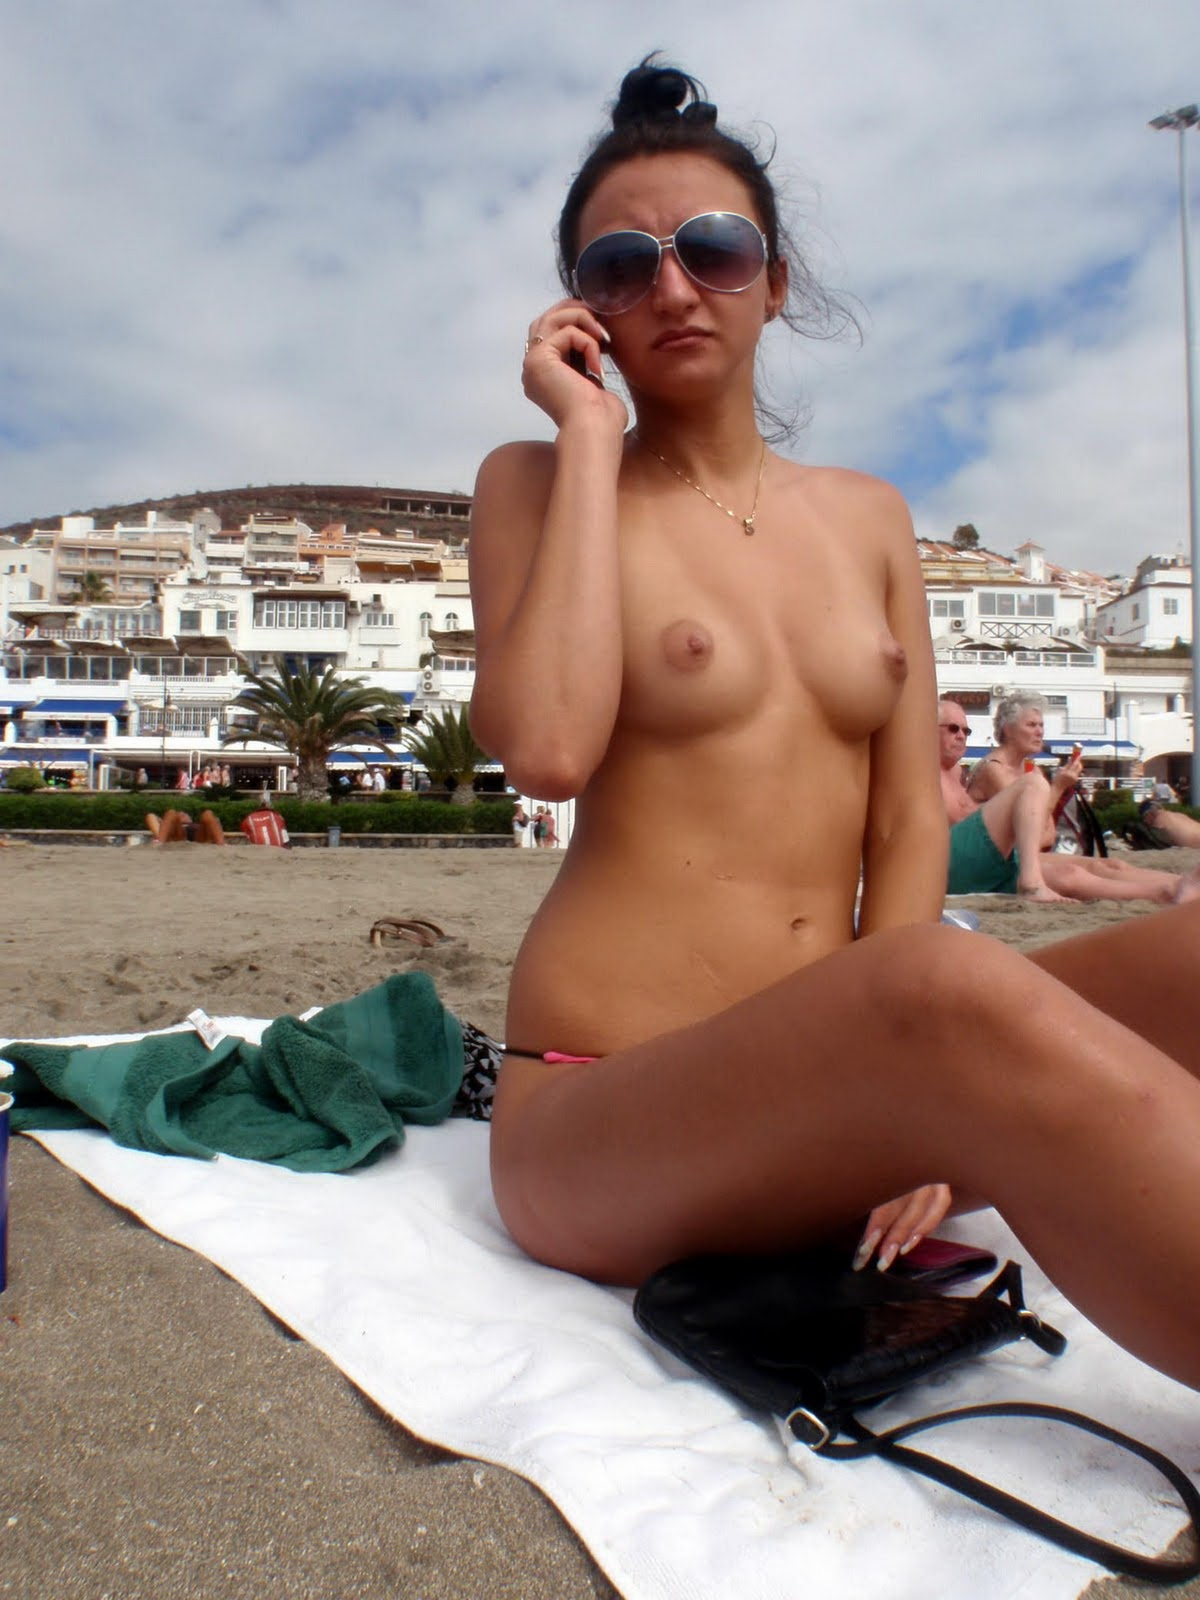 Sexy European Brunette Topless On Vacation At The Beach -3031